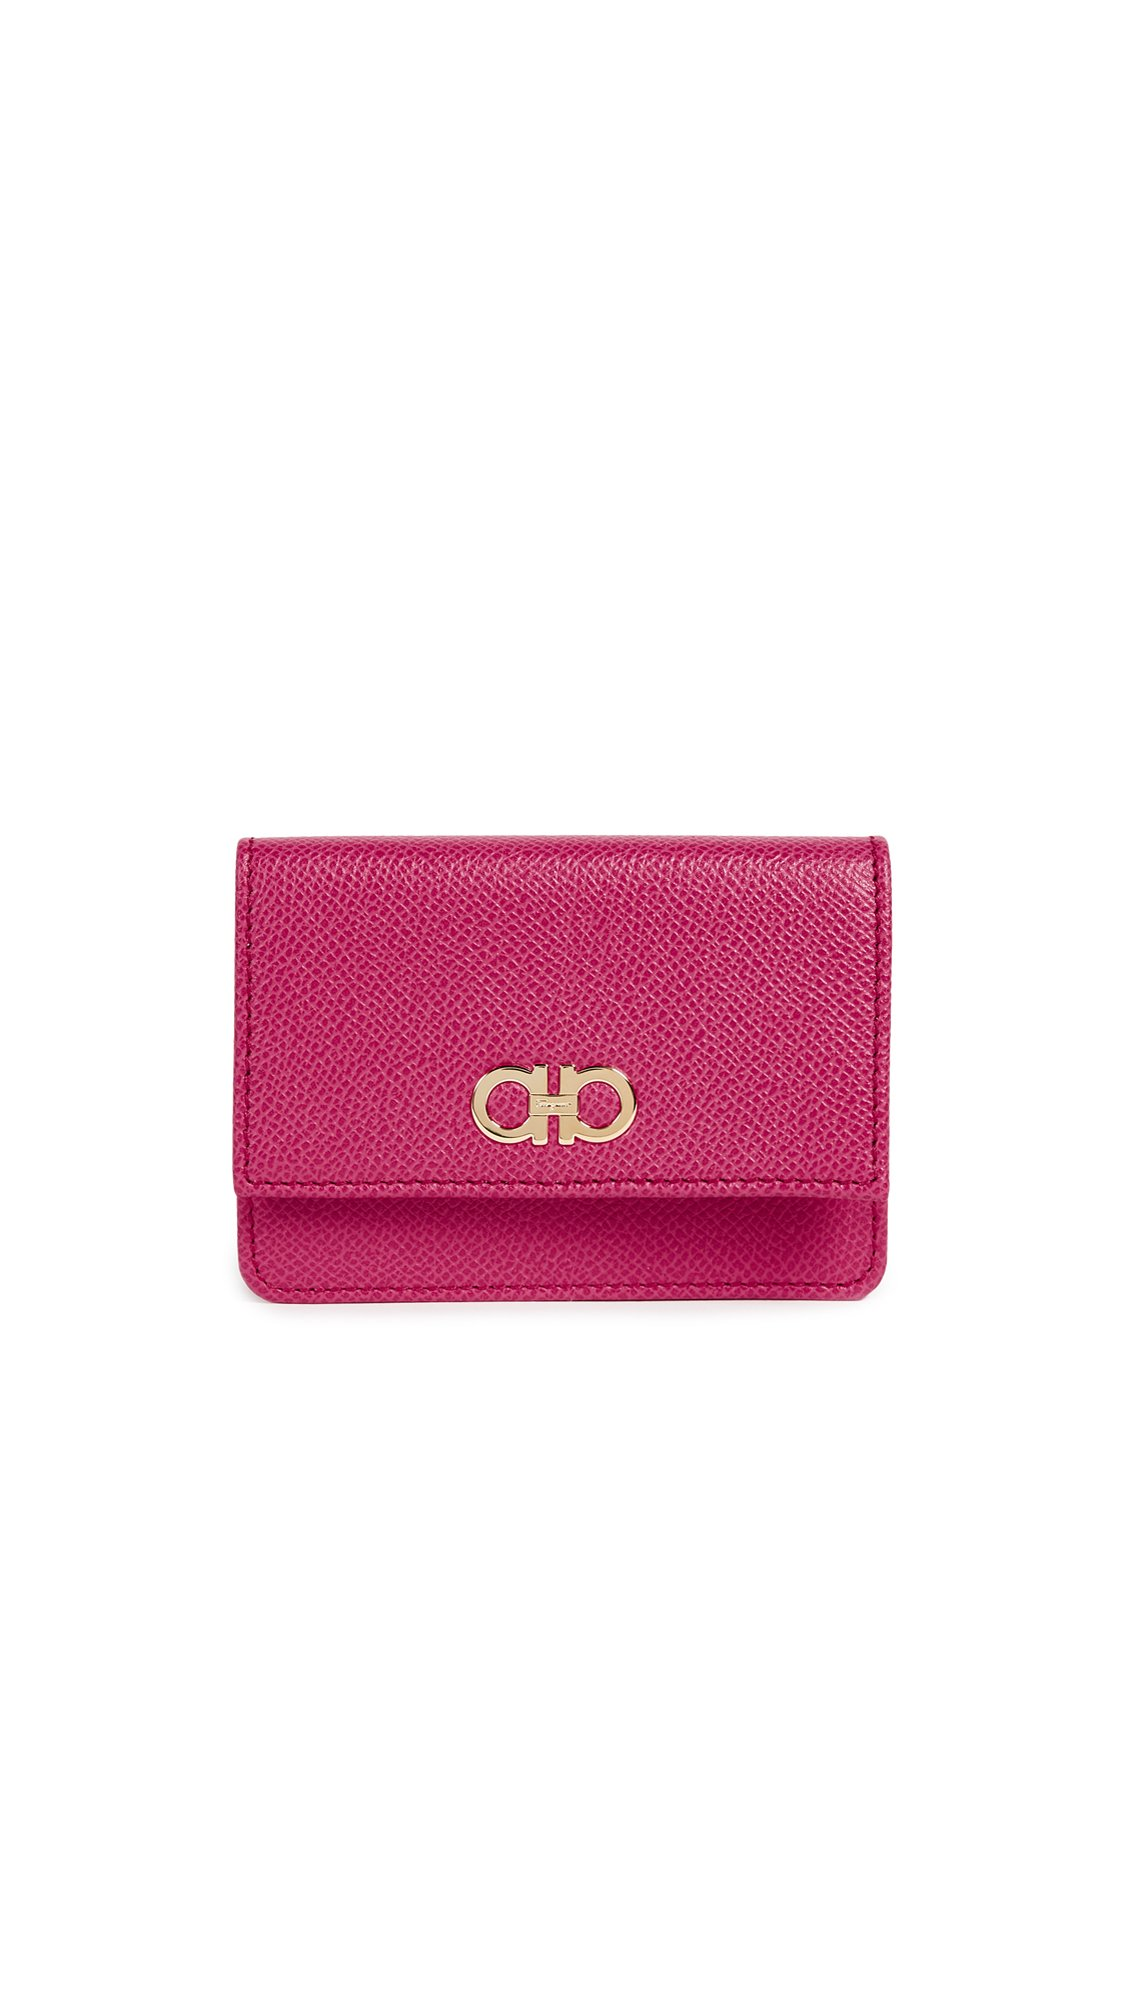 Salvatore Ferragamo Women's Gancini Card Case, Begonia, One Size